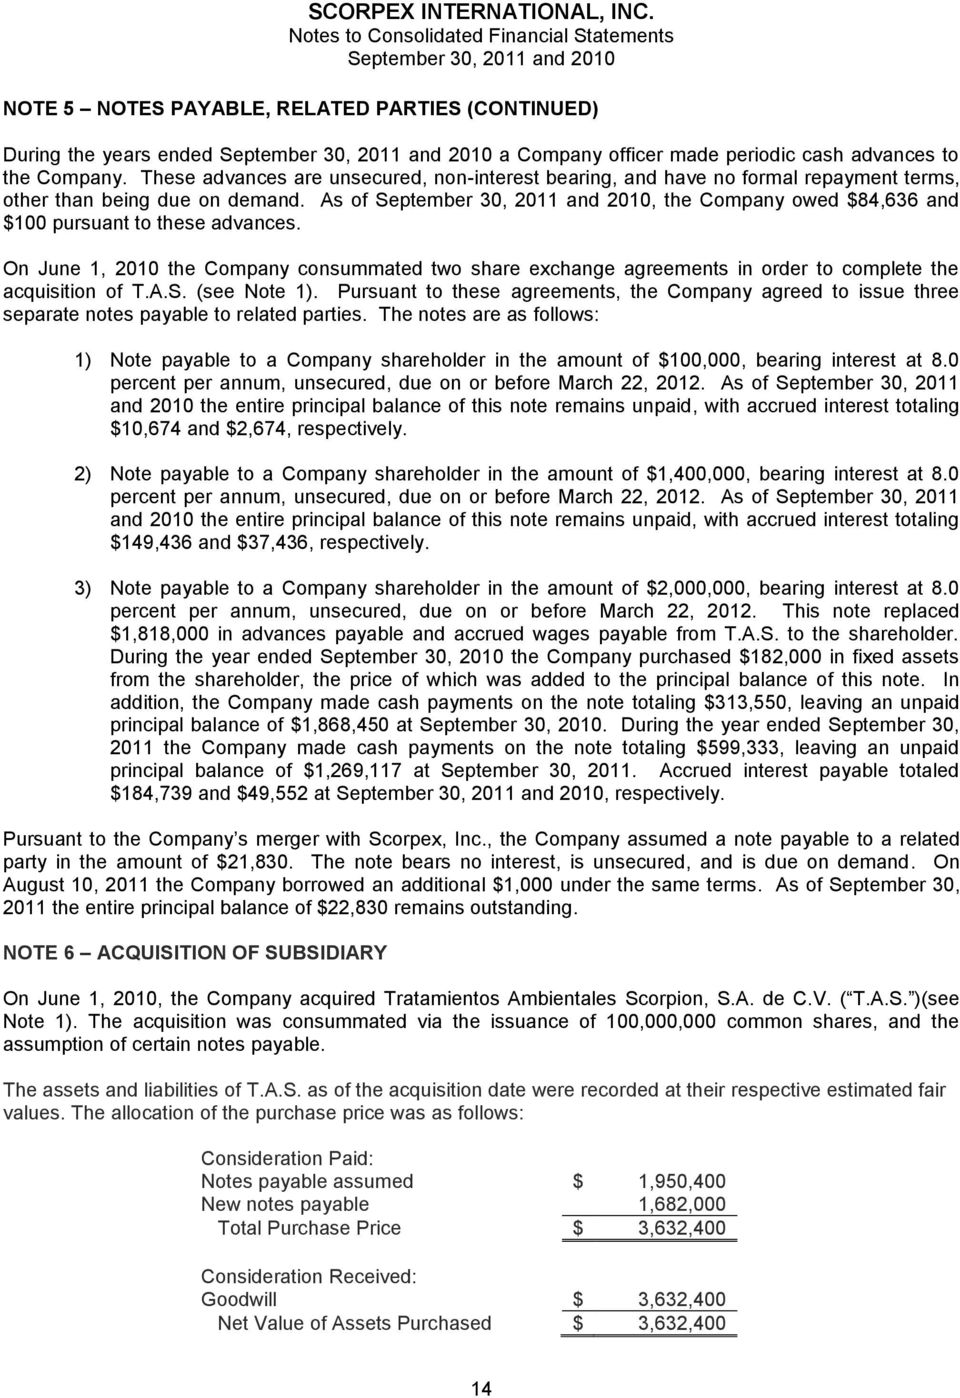 On June 1, 2010 the Company consummated two share exchange agreements in order to complete the acquisition of T.A.S. (see Note 1).